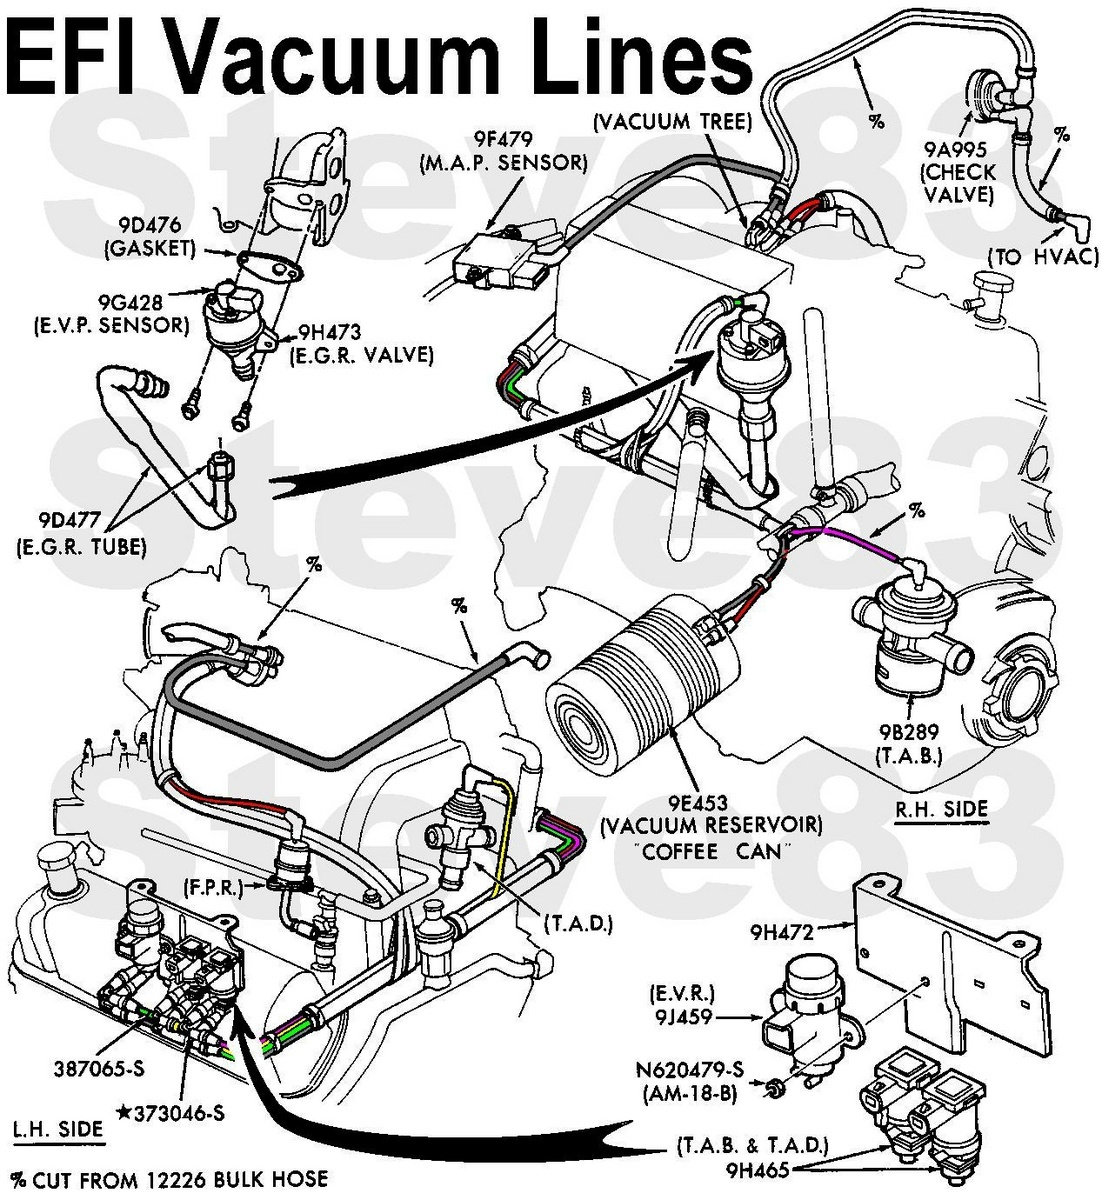 2000 F250 Fuel Line Diagram on 1995 Nissan Pick Up Fuse Box Diagram